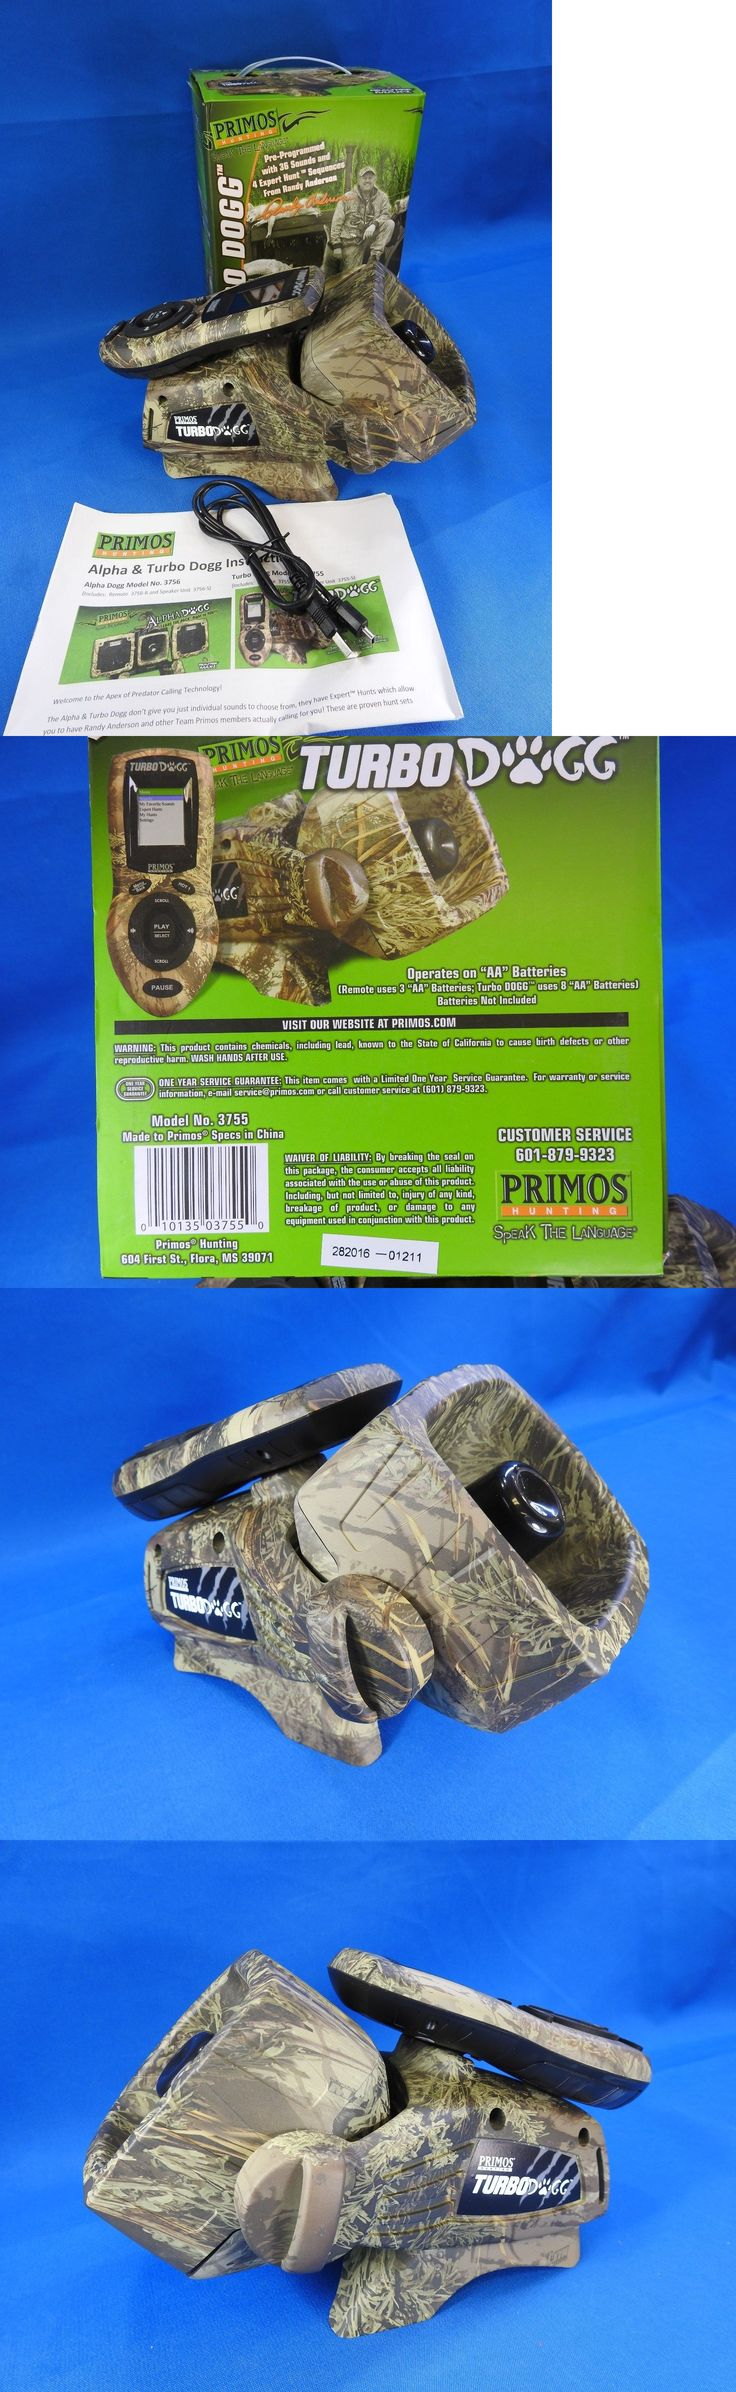 Game Calls 36252: Primos Turbo Dogg Electronic Predator Game Call System W/ Remote - 3755 BUY IT NOW ONLY: $165.0